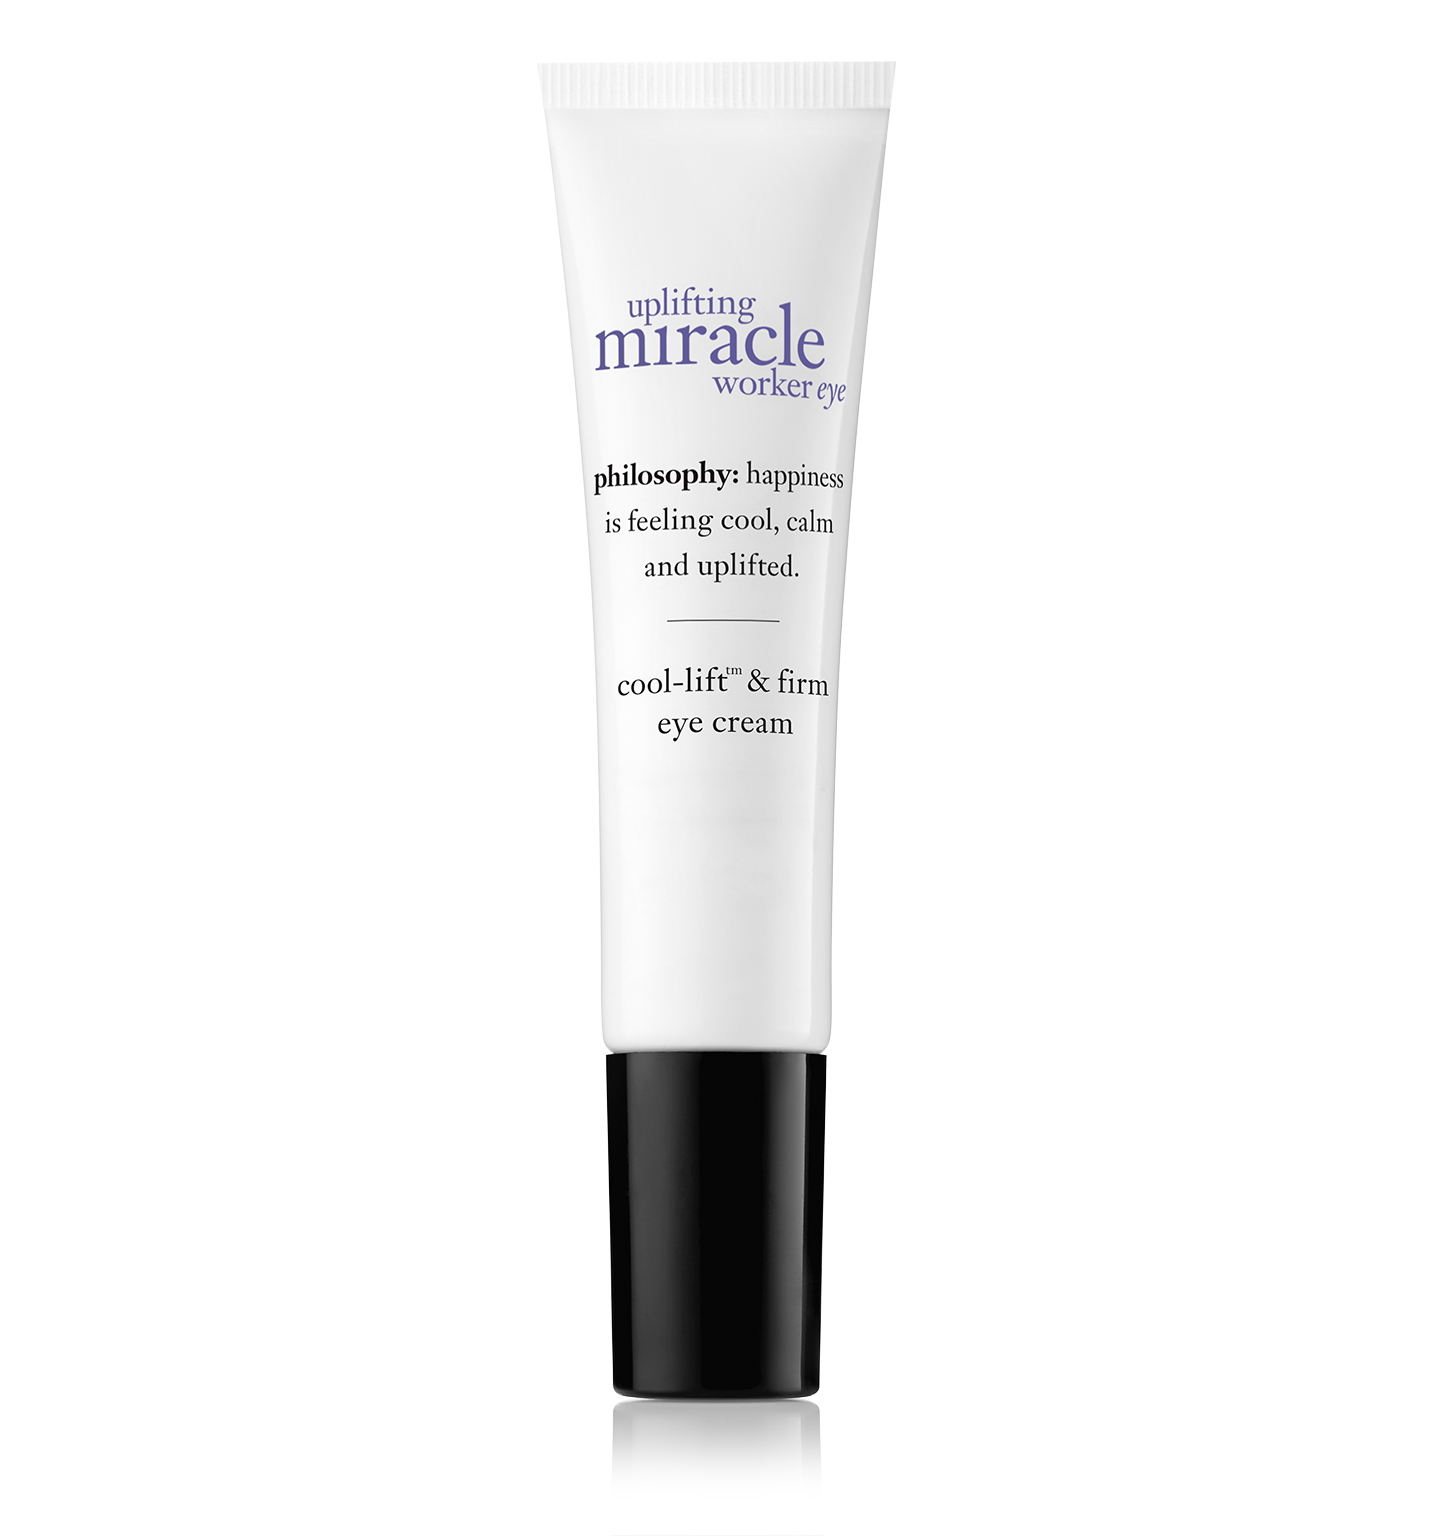 philosophy, uplifting miracle worker eye cream